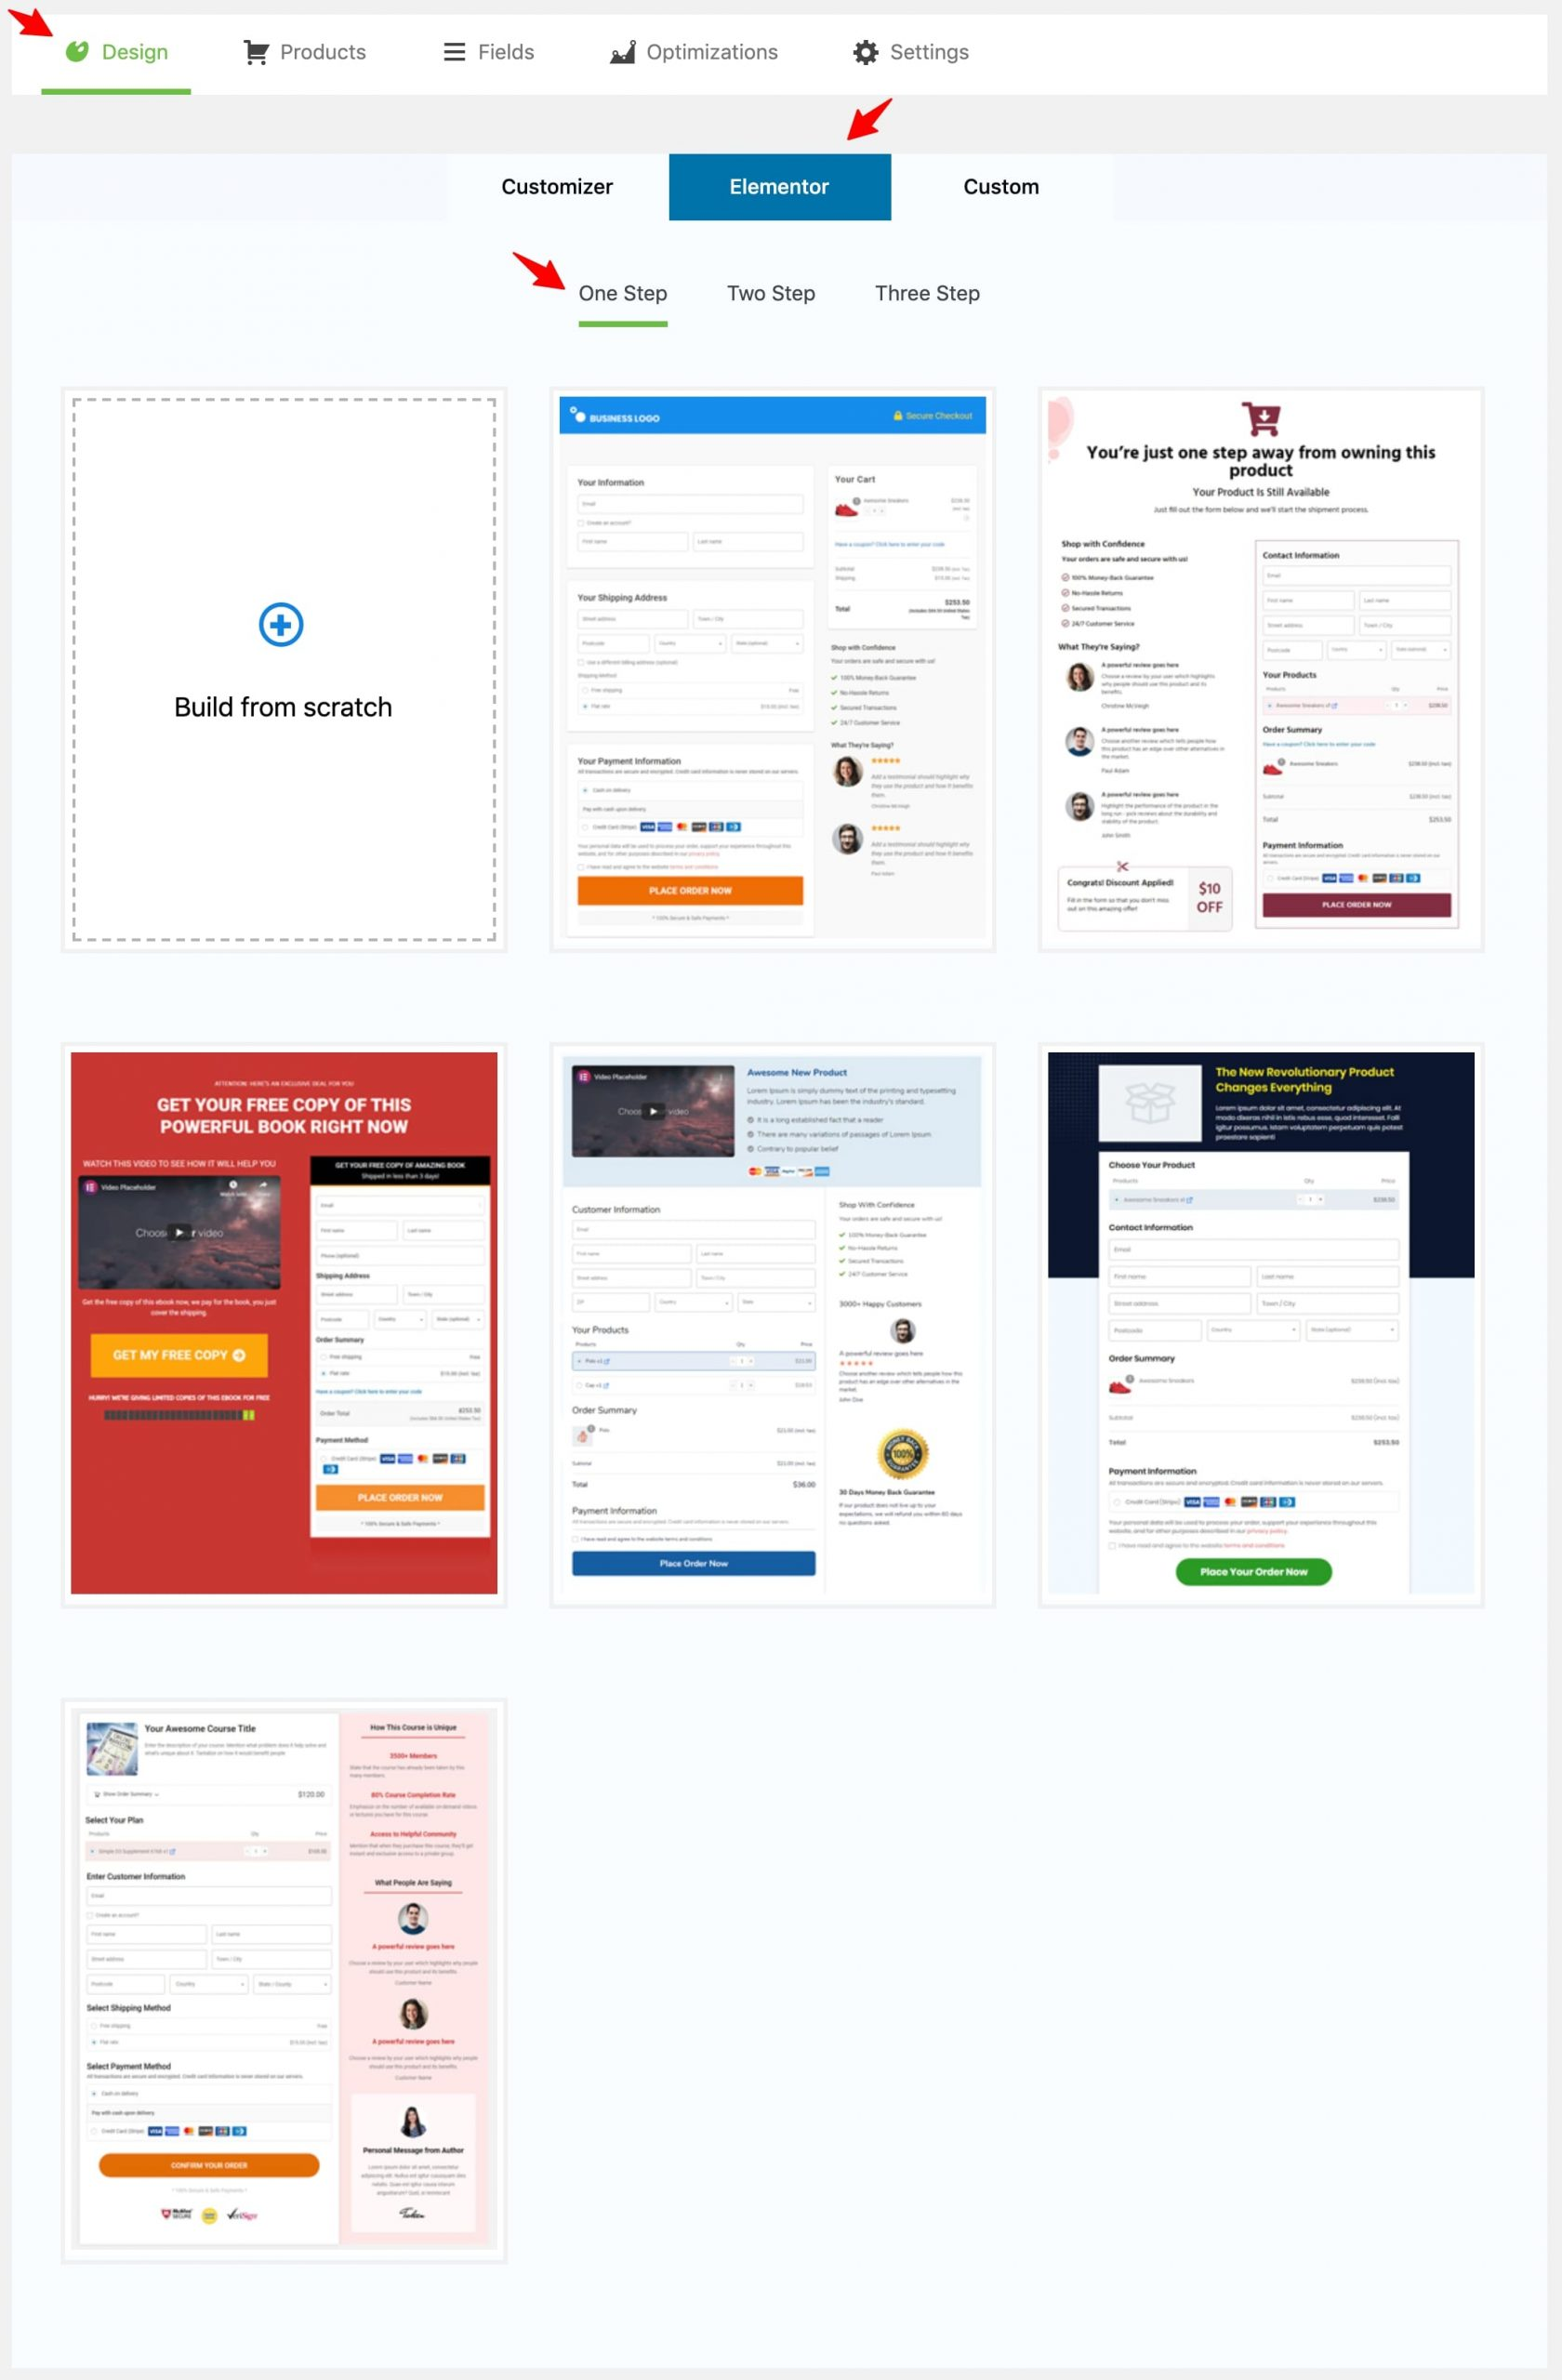 WooFunnels Design section while creating a two-step one page checkout